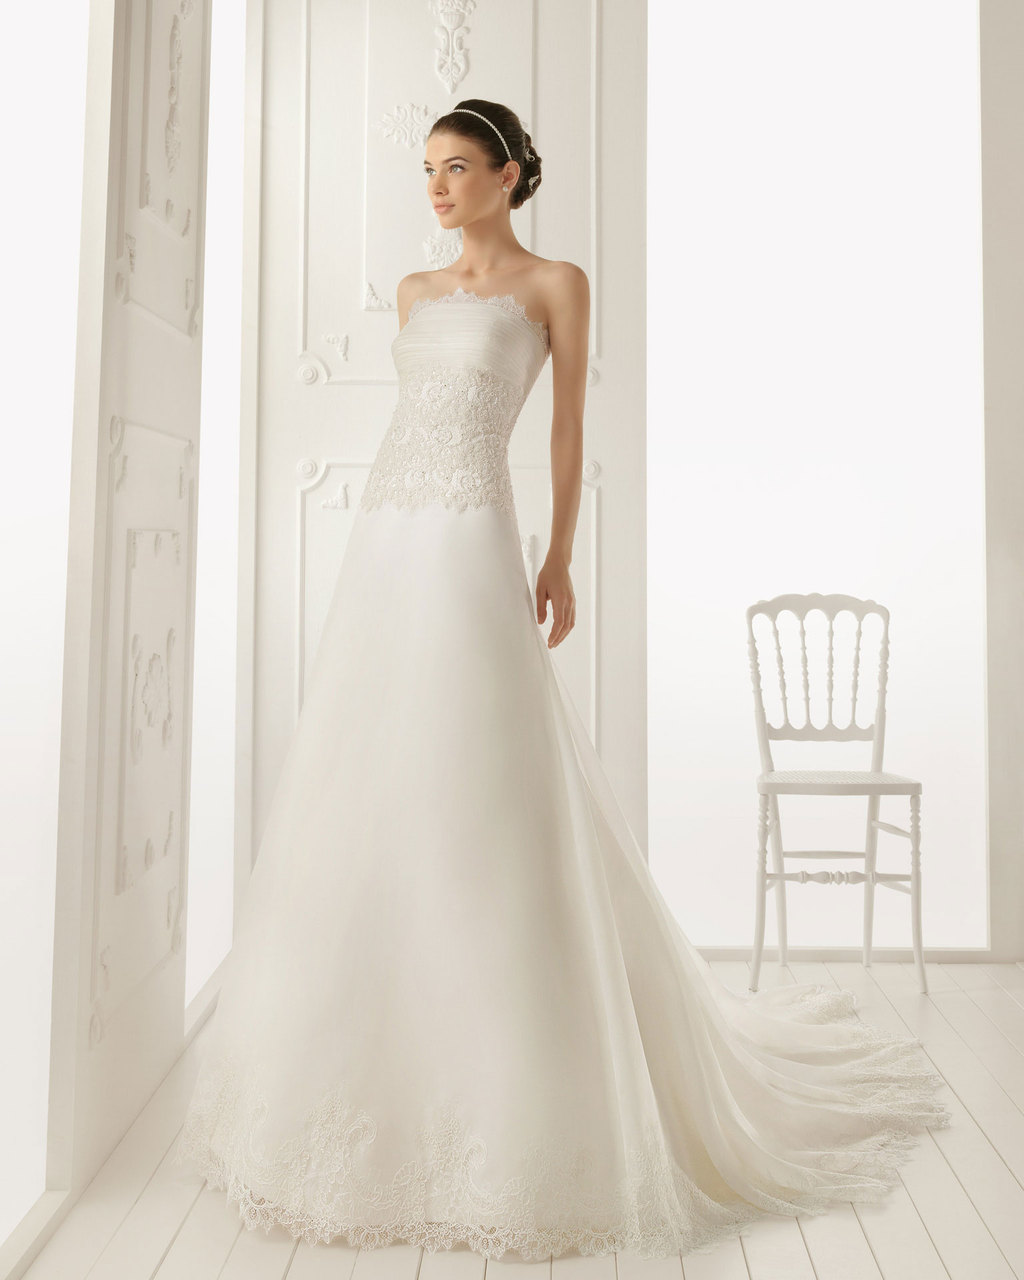 2013-wedding-dress-aire-barcelona-bridal-gowns-rioja.full